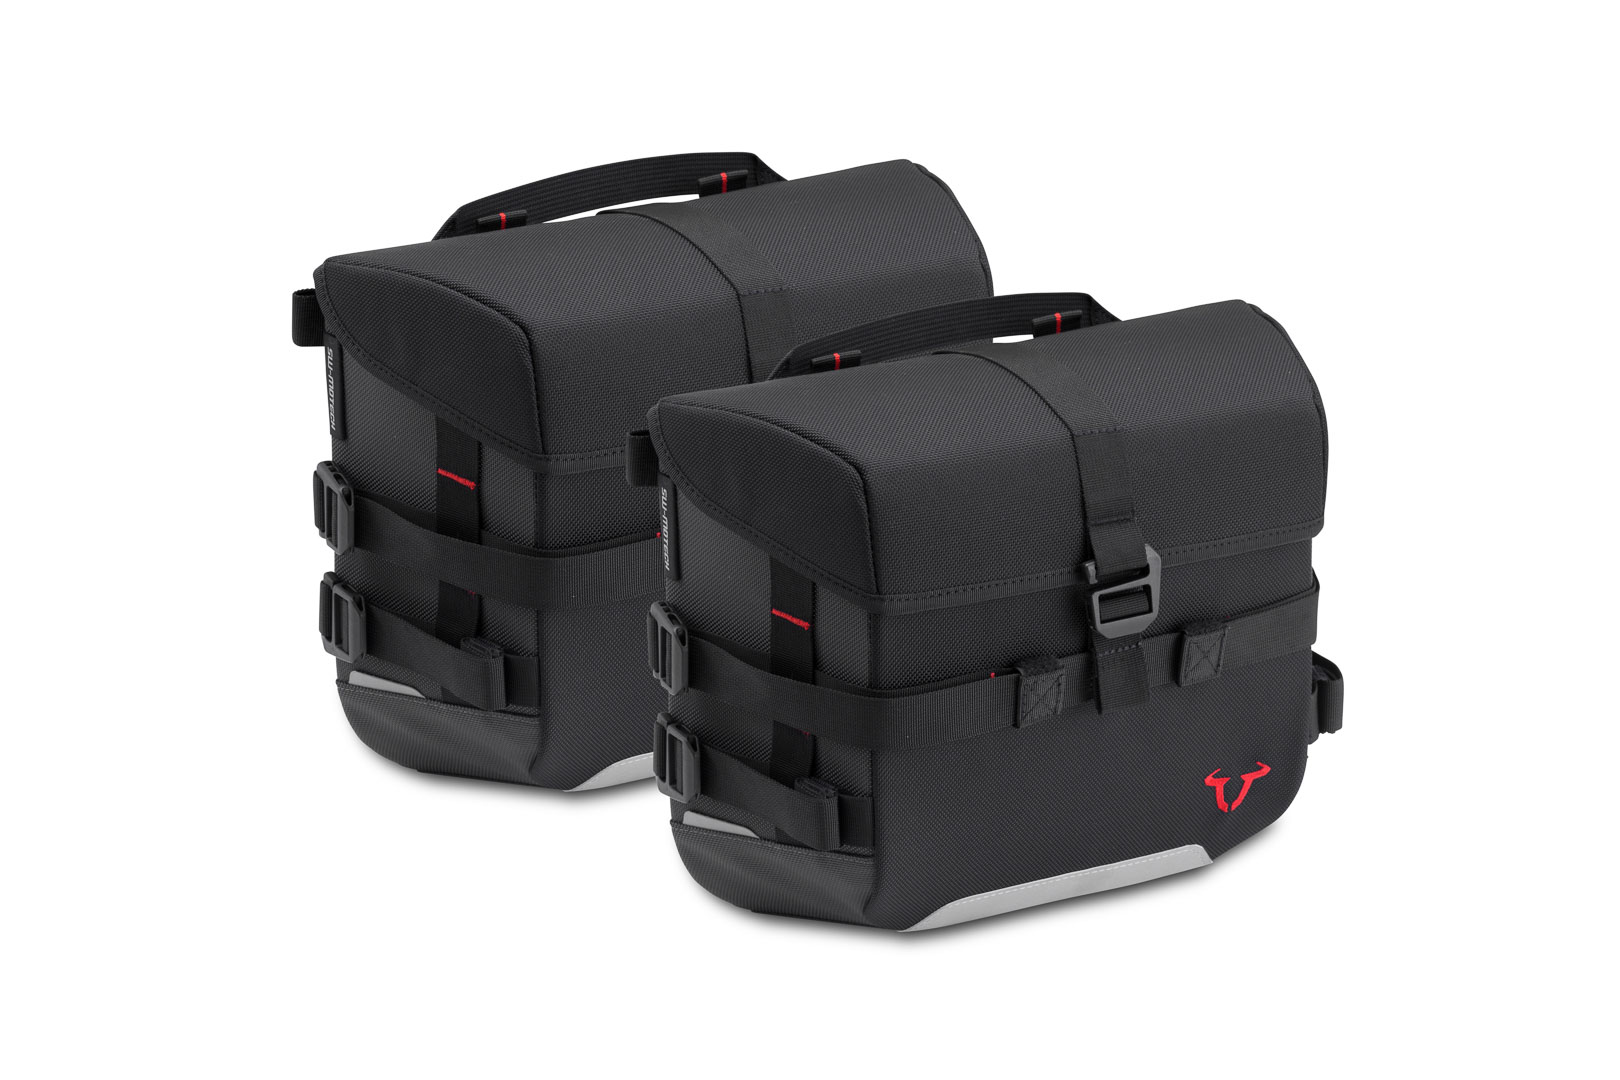 SW-Motech SysBag 10/10 Taschen-System - Ducati Monster 797 (16-). BC.SYS.22.886.30000/B